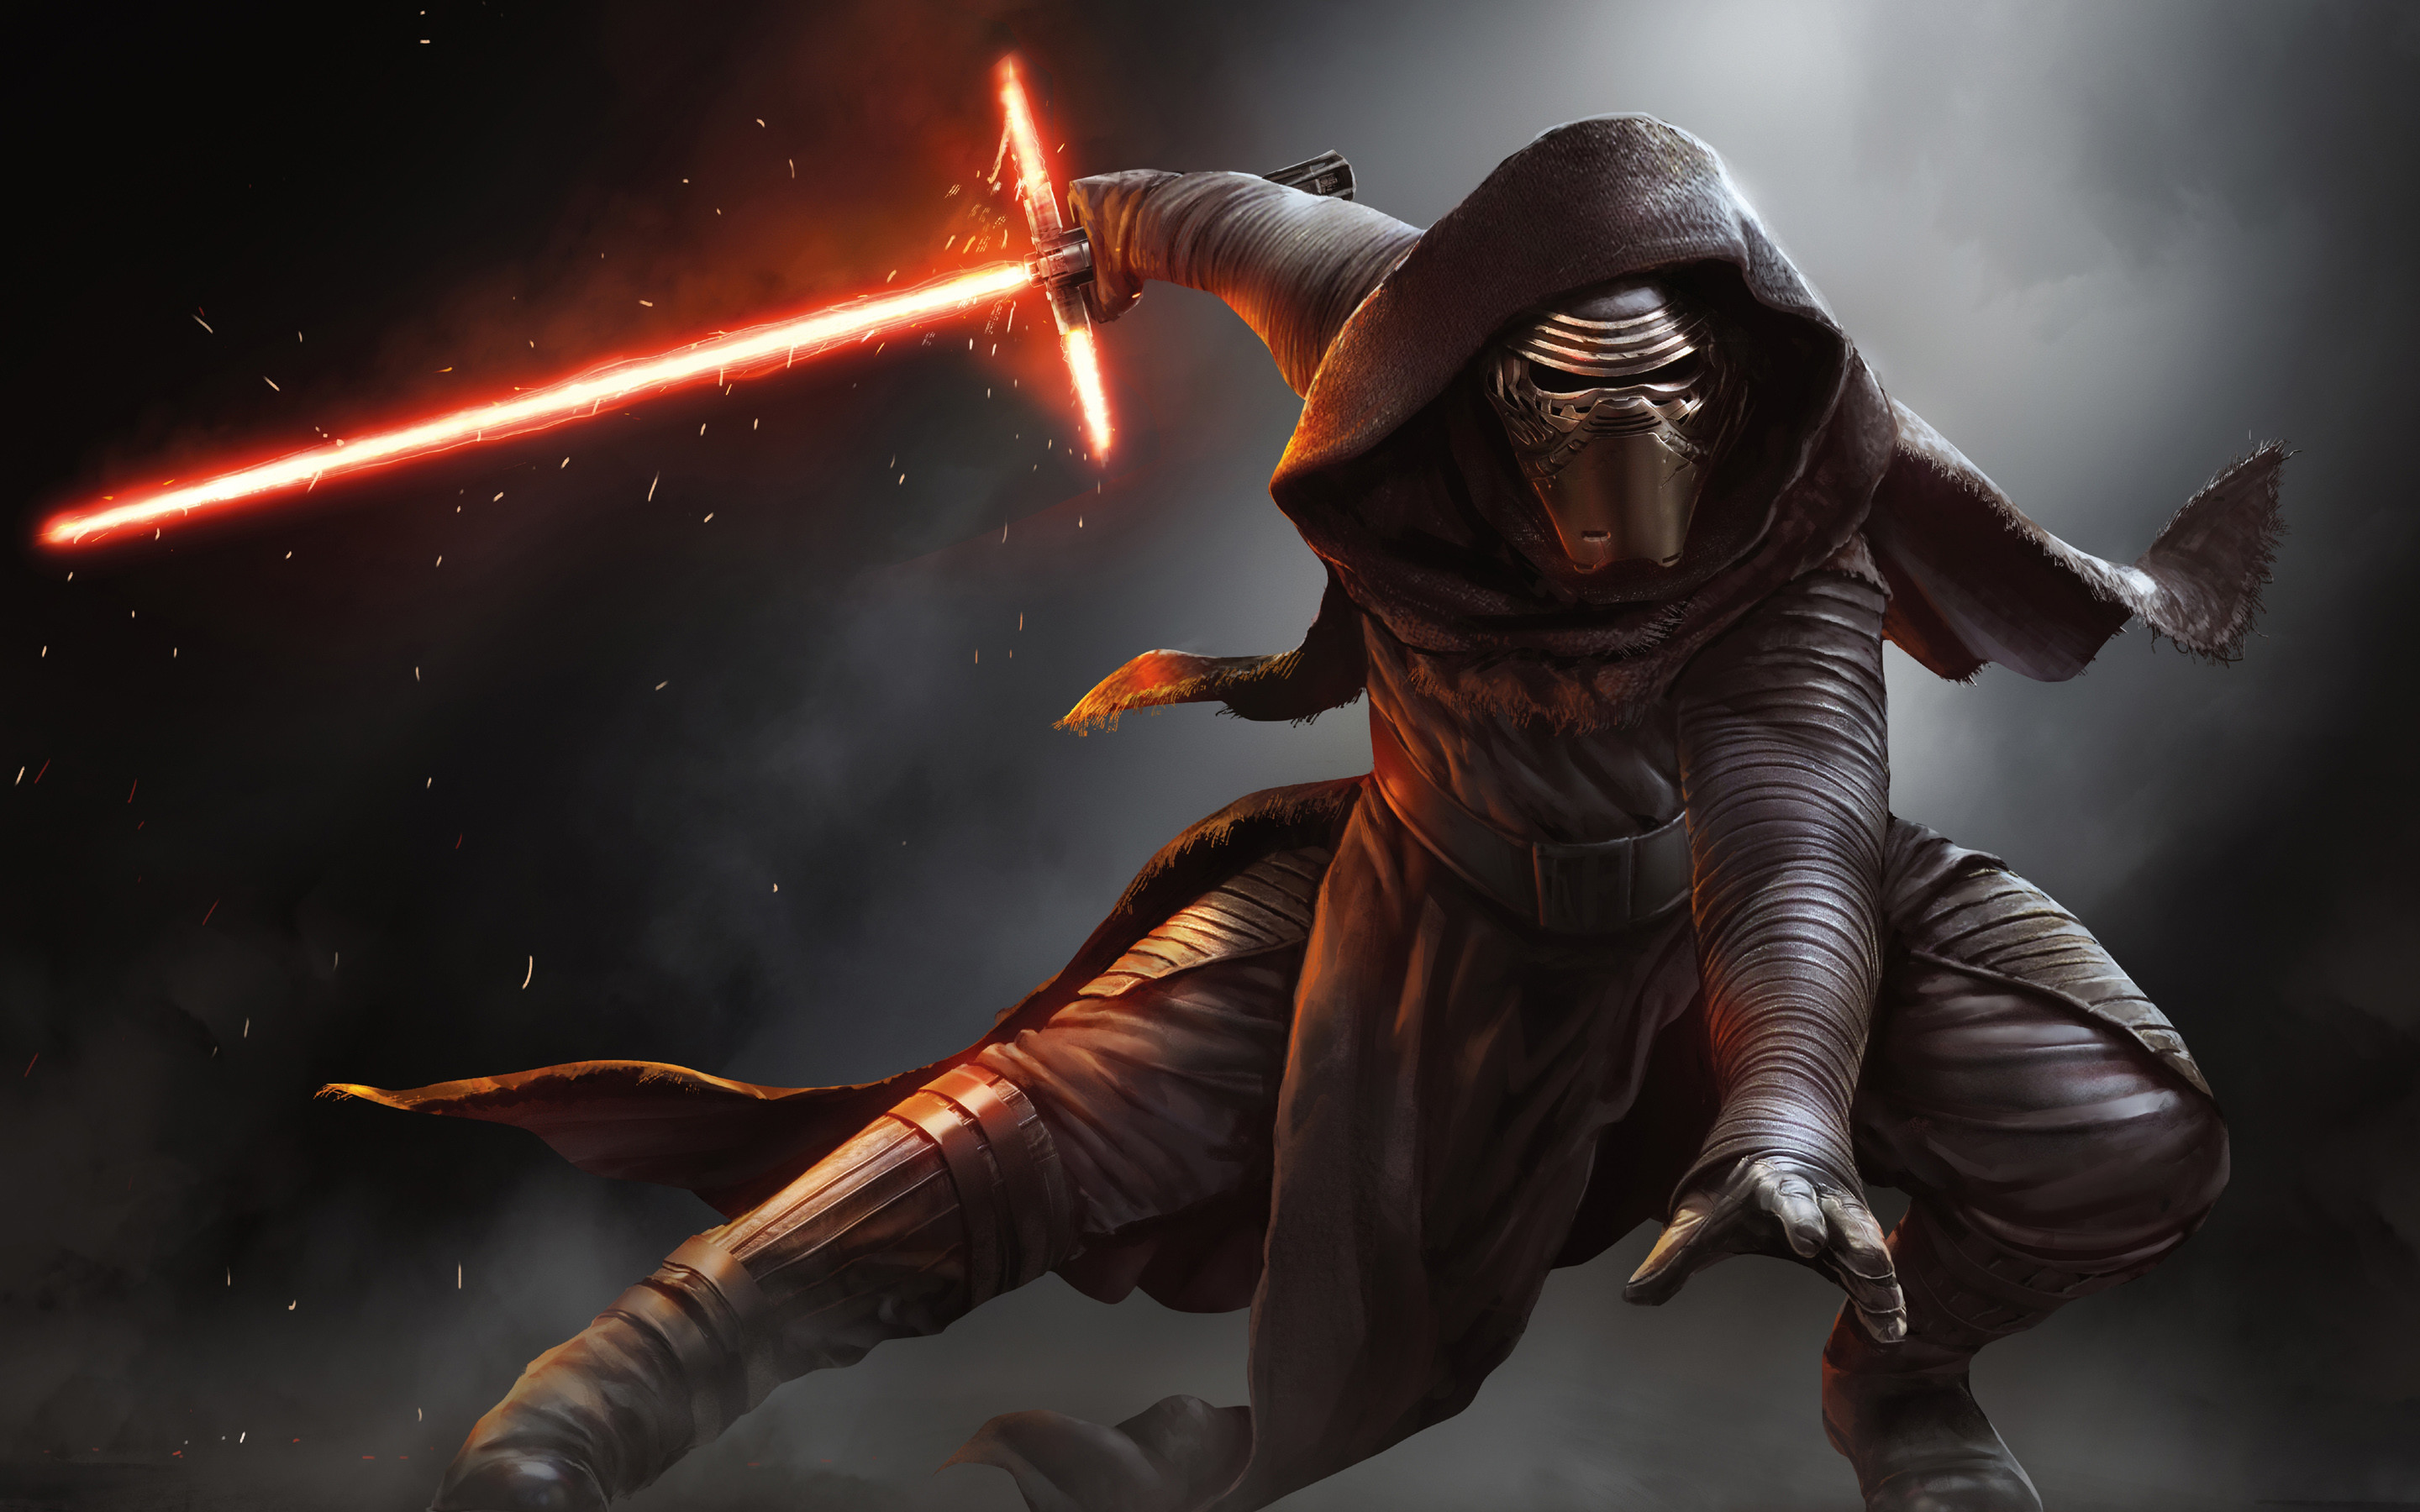 2880x1800 Topic SWDBS1F1: Darth Revan Vs. Kylo Ren